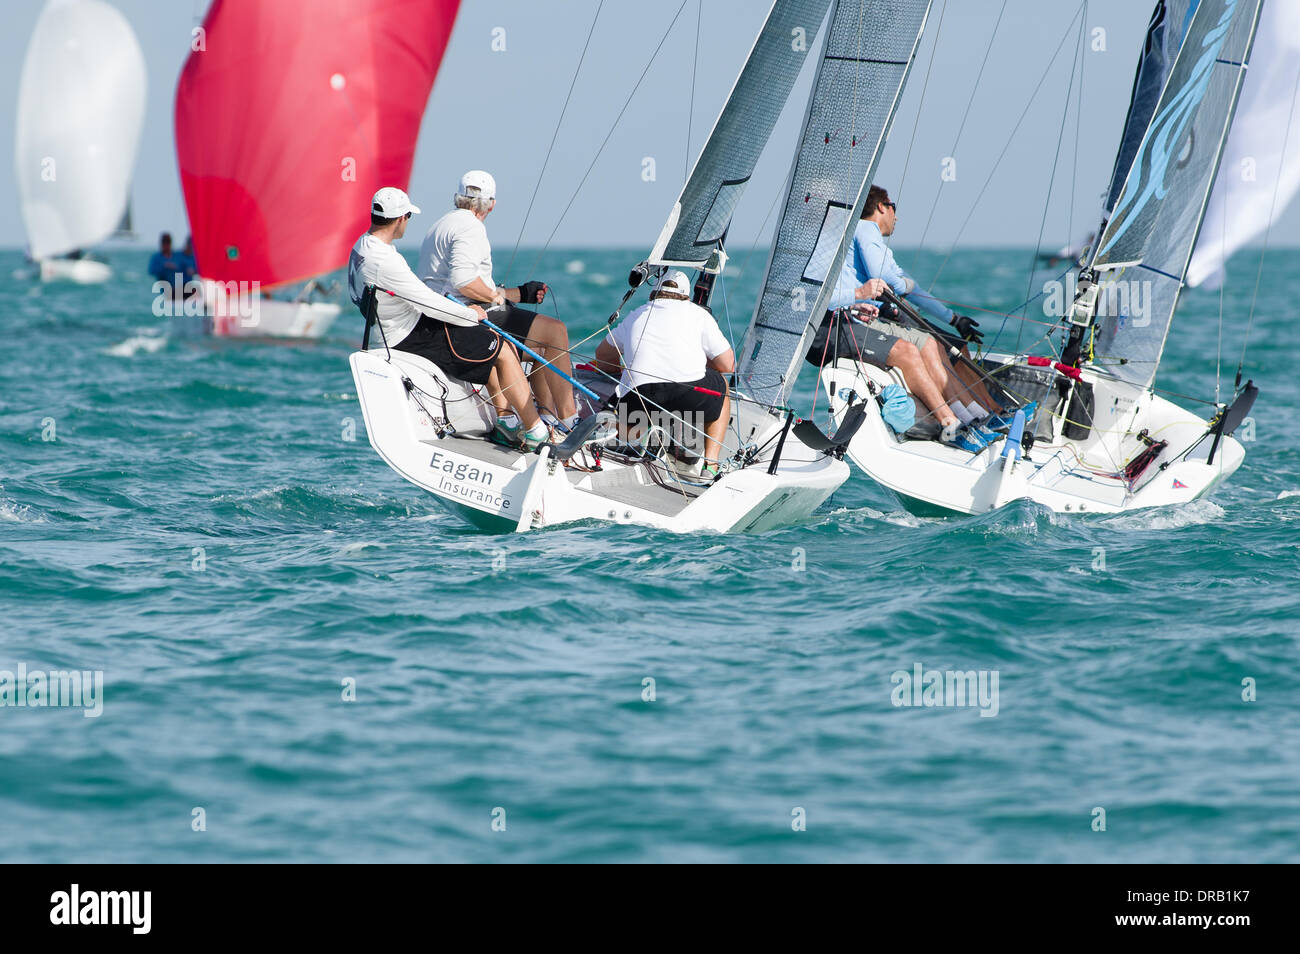 Key Largo, FL, USA, December 12, 2013 - Cajun Underwriting, skippered by Marcus Eagan, covers John Taylor's Ninkasi after a close mark rounding.  Taylor won the regatta and Eagan earned 3rd overall as well as 1st in the Corinthian division. - Stock Image